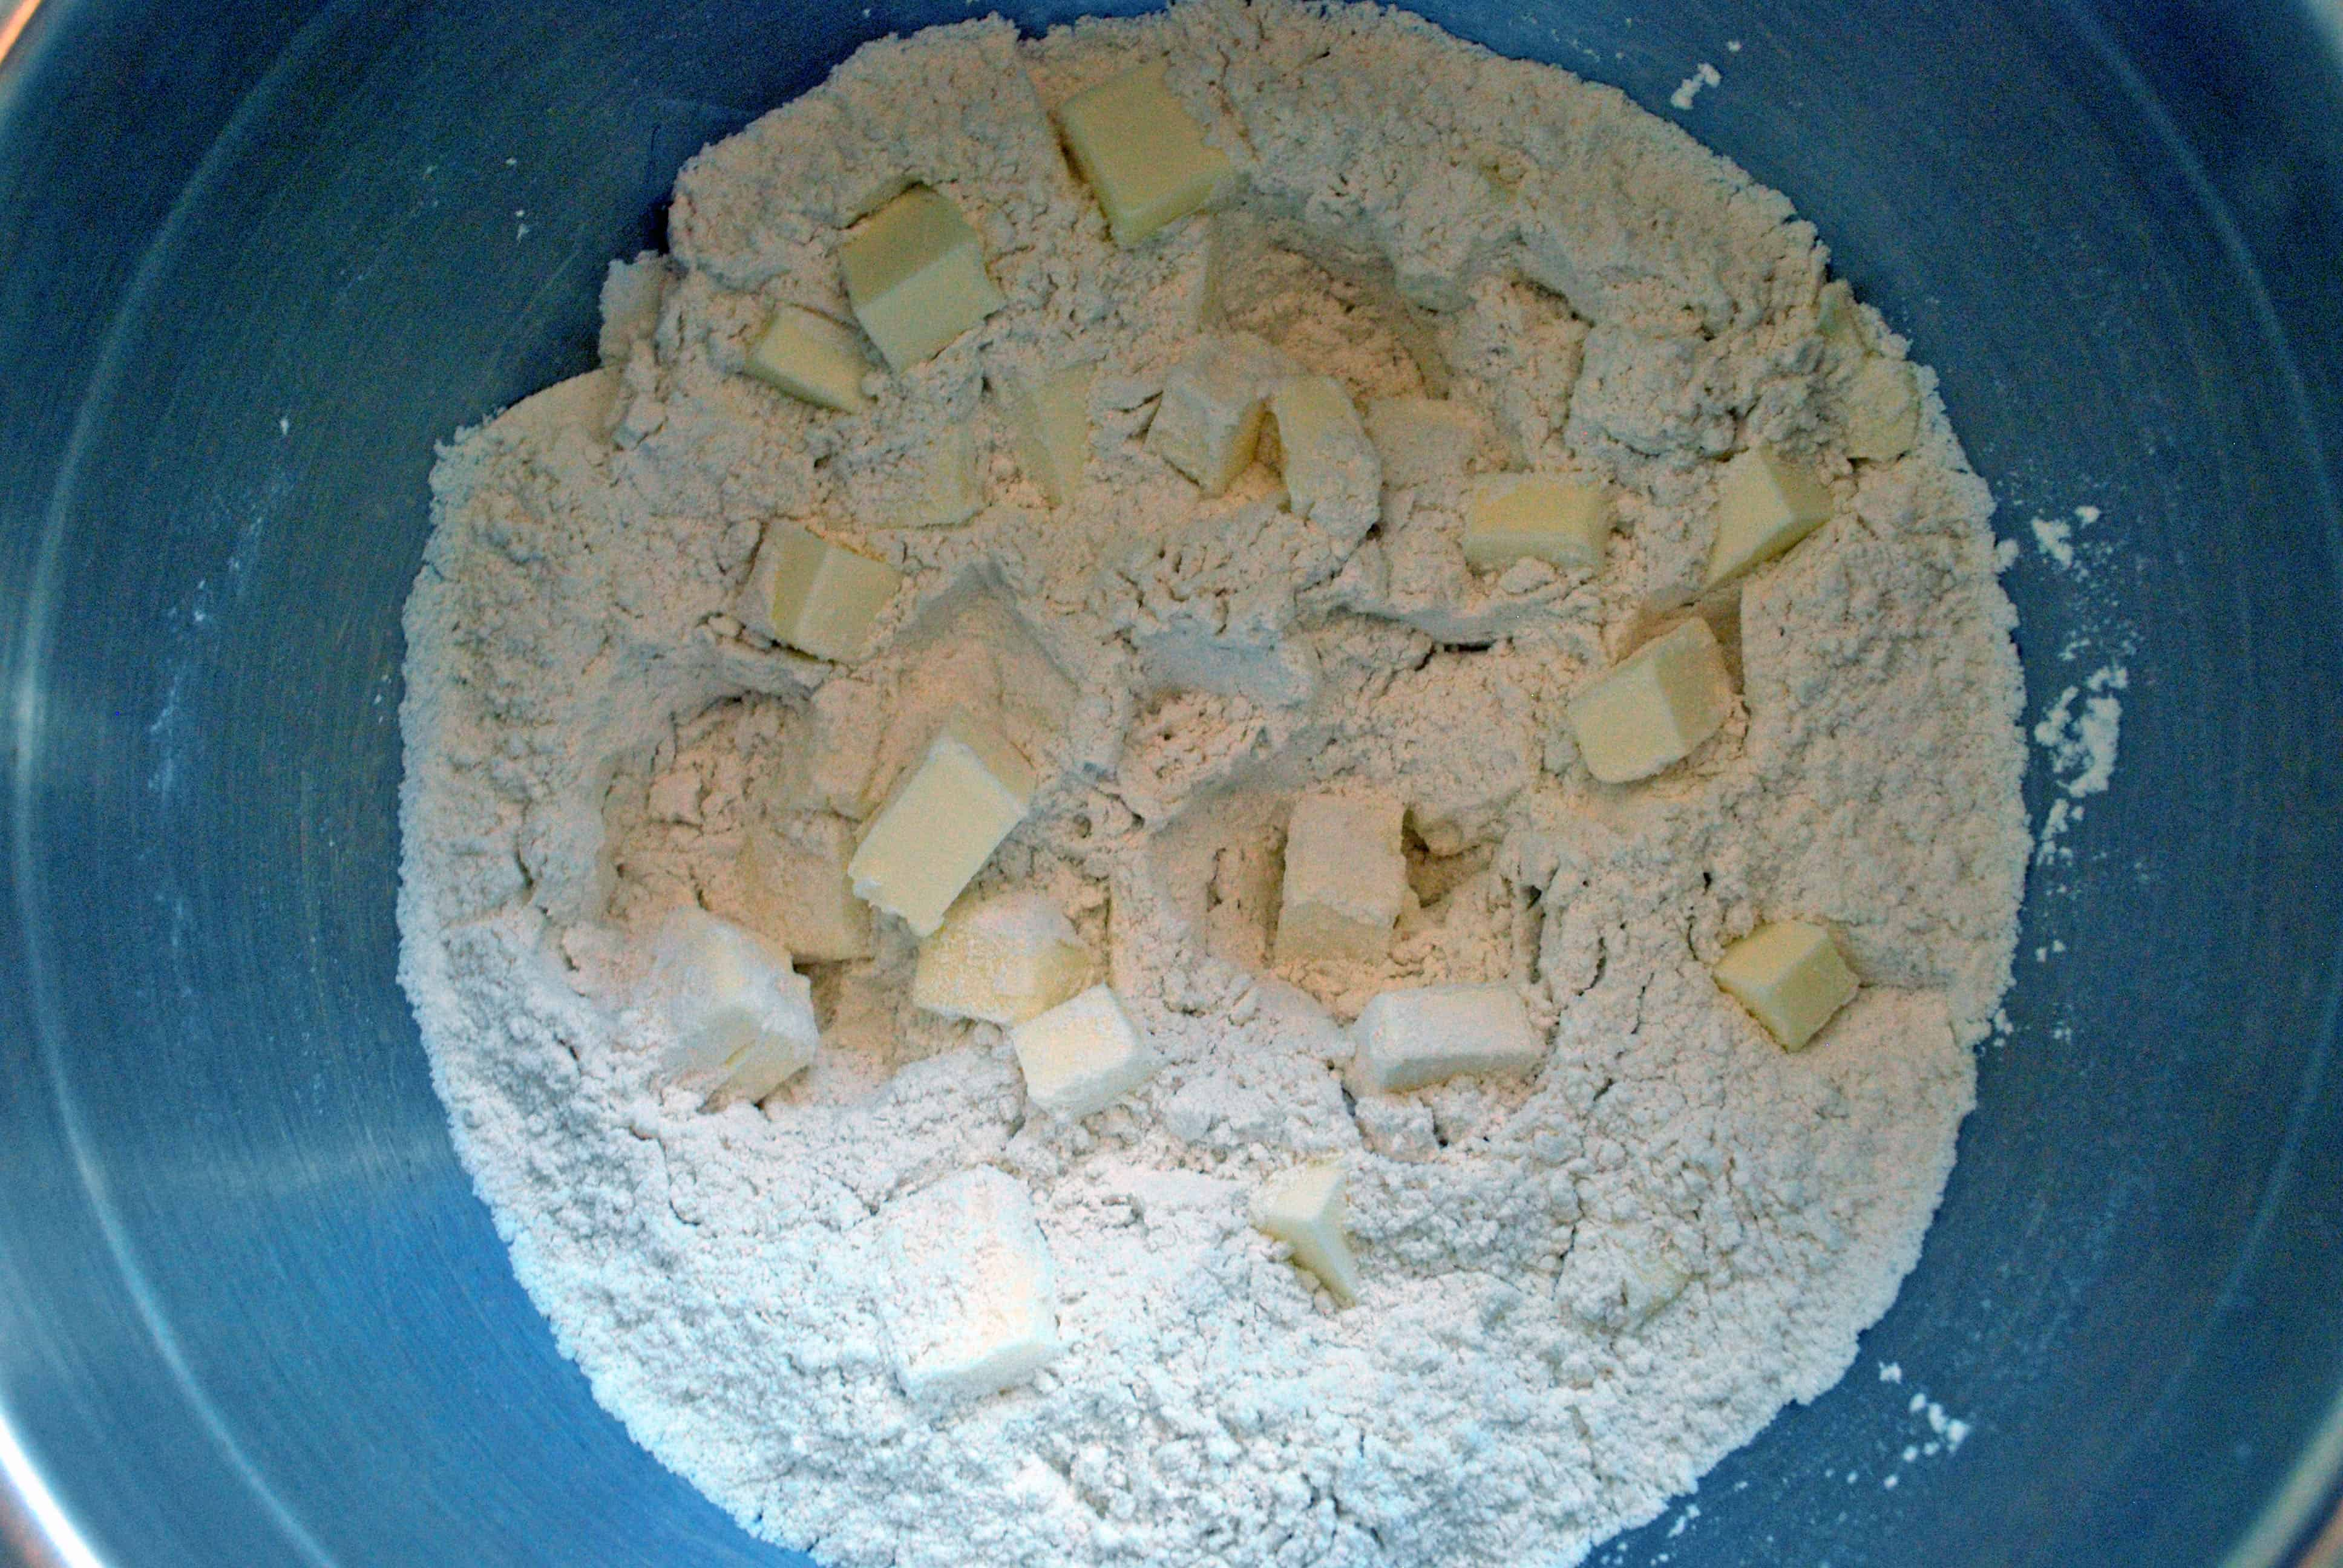 cubed butter in dry ingredients